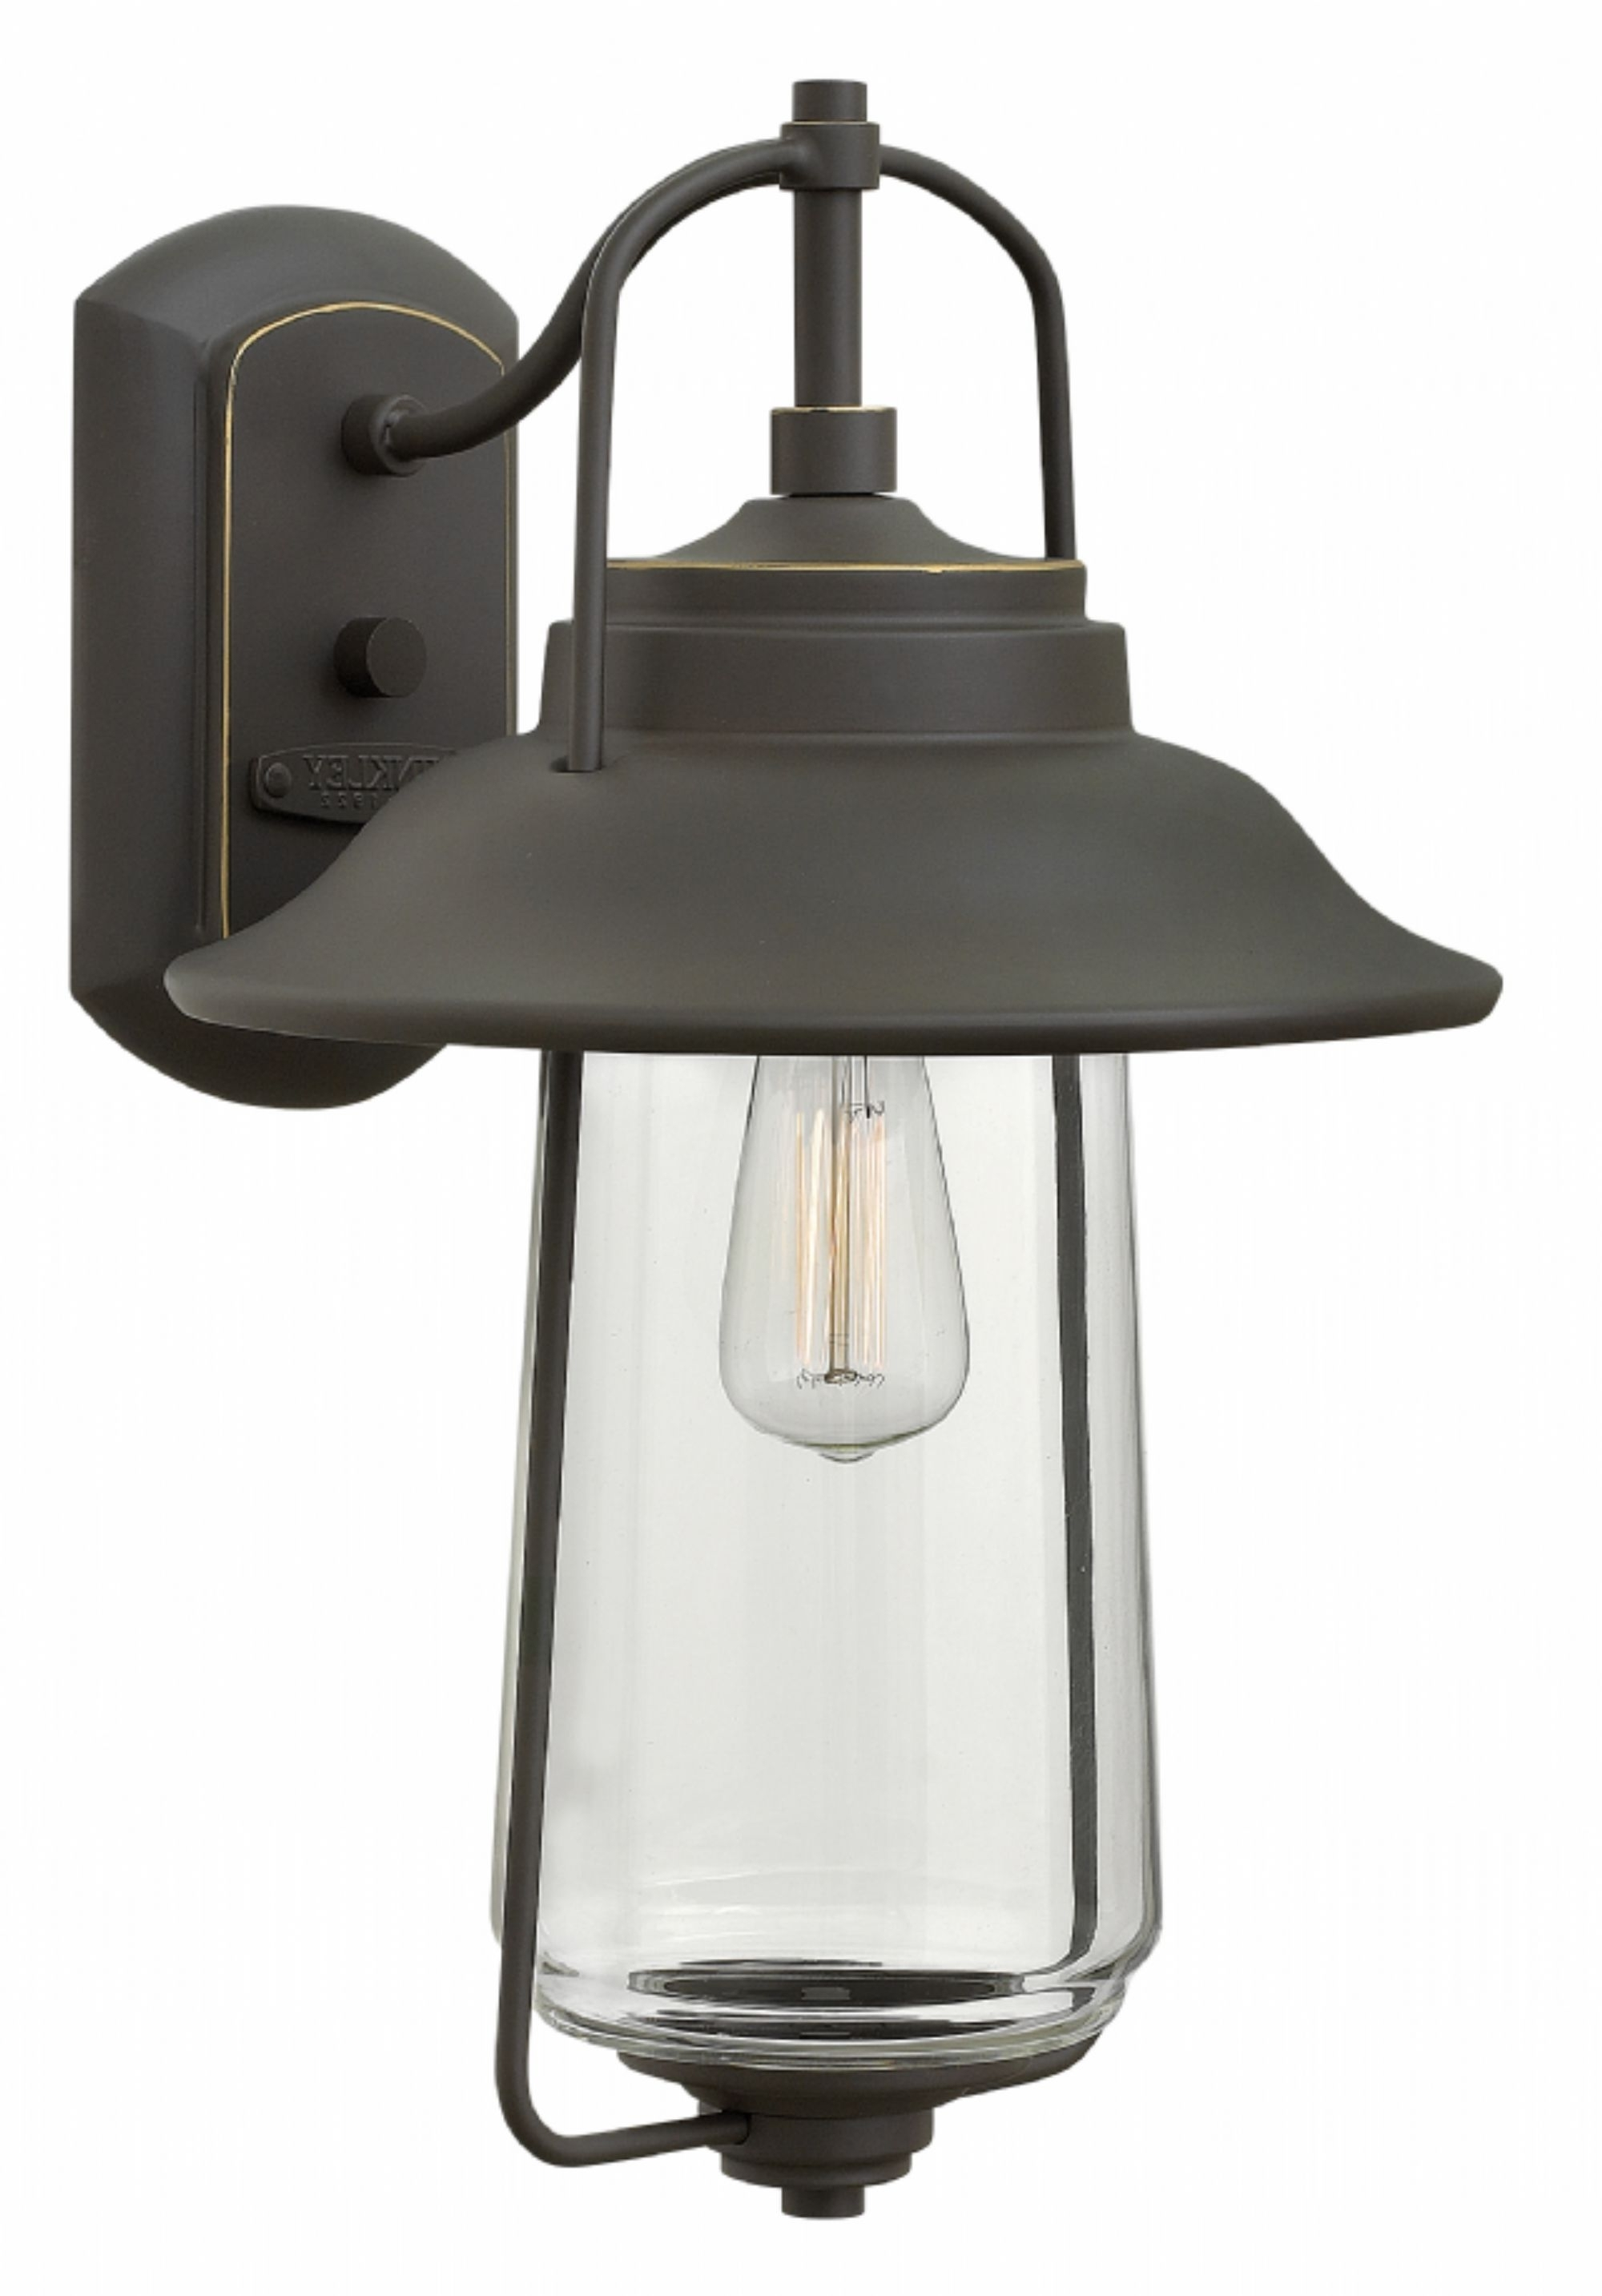 Oil Rubbed Bronze Belden Place > Exterior Wall Mount With Best And Newest Hinkley Outdoor Ceiling Lights (View 14 of 20)